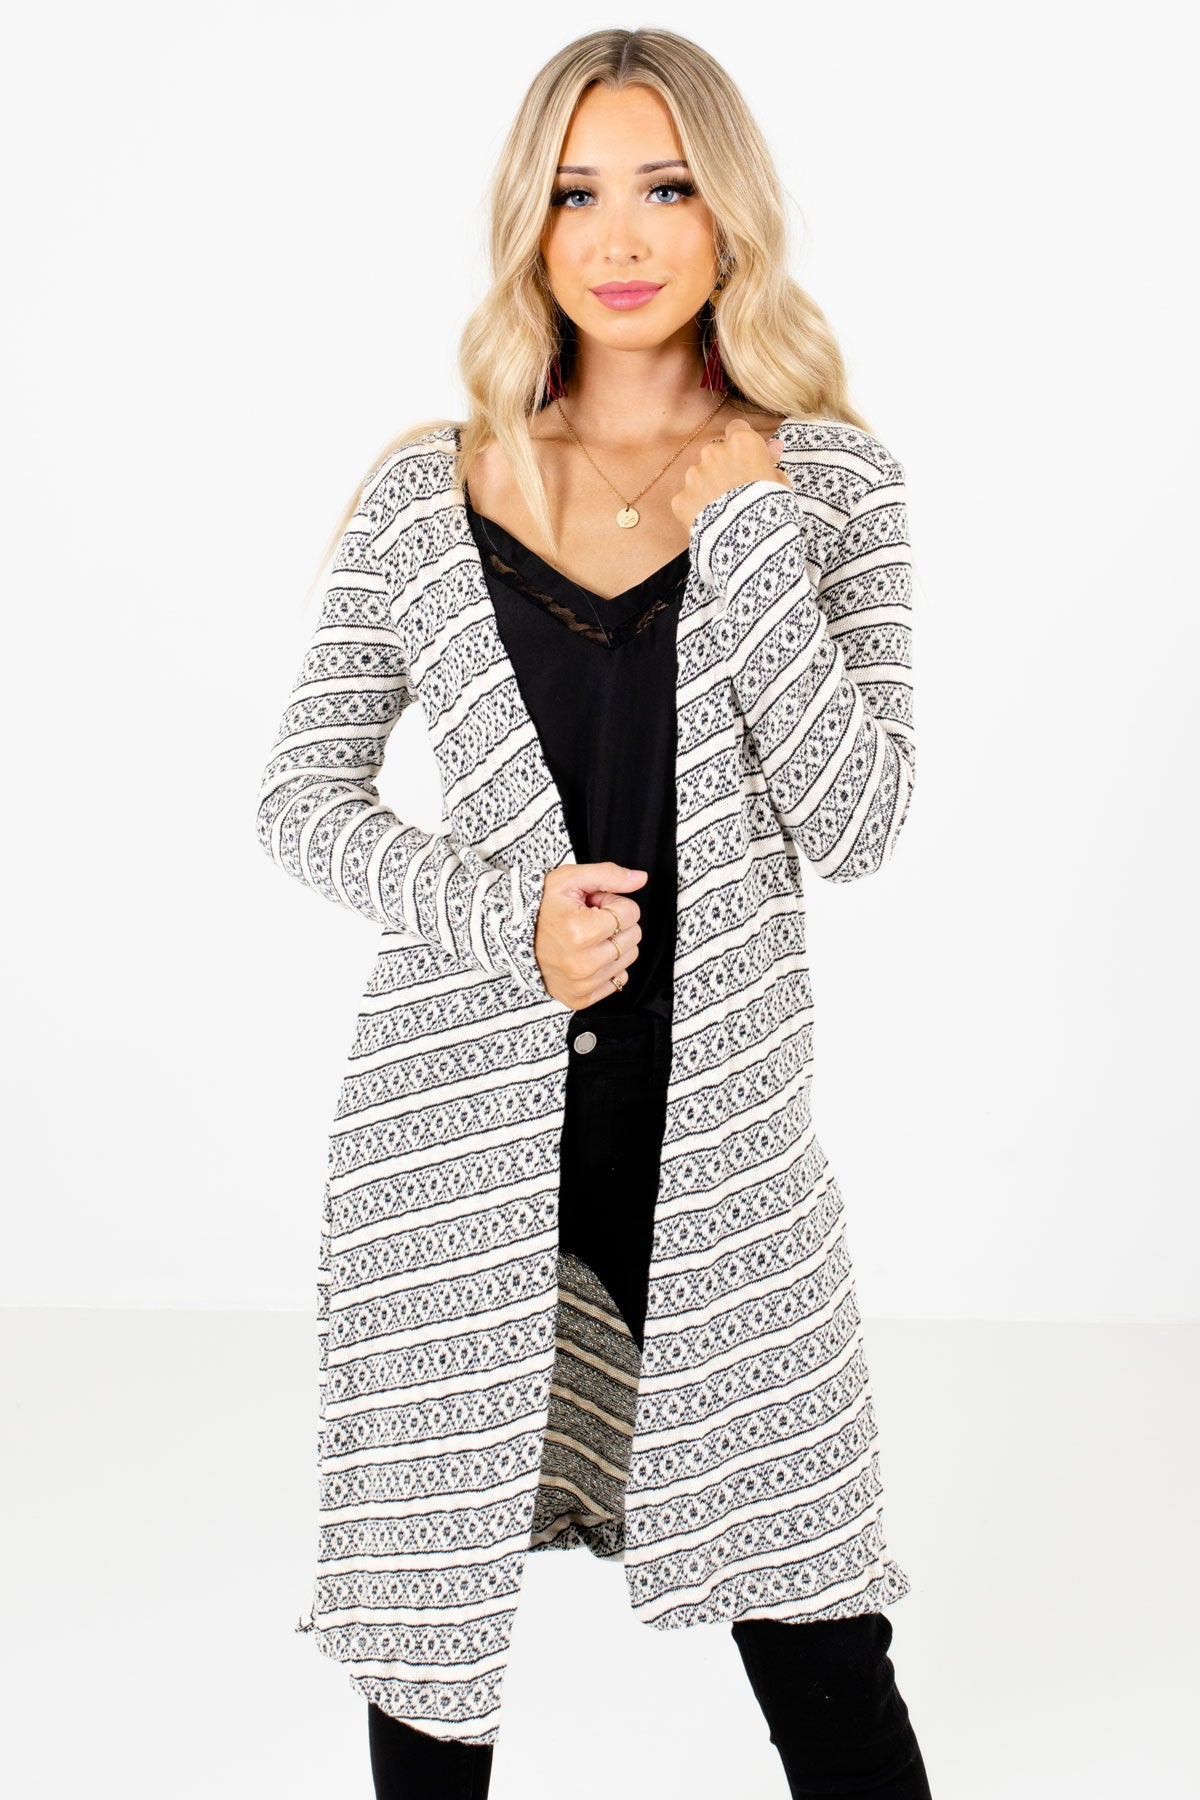 White and Black Stripe Geometric Patterned Boutique Cardigans for Women